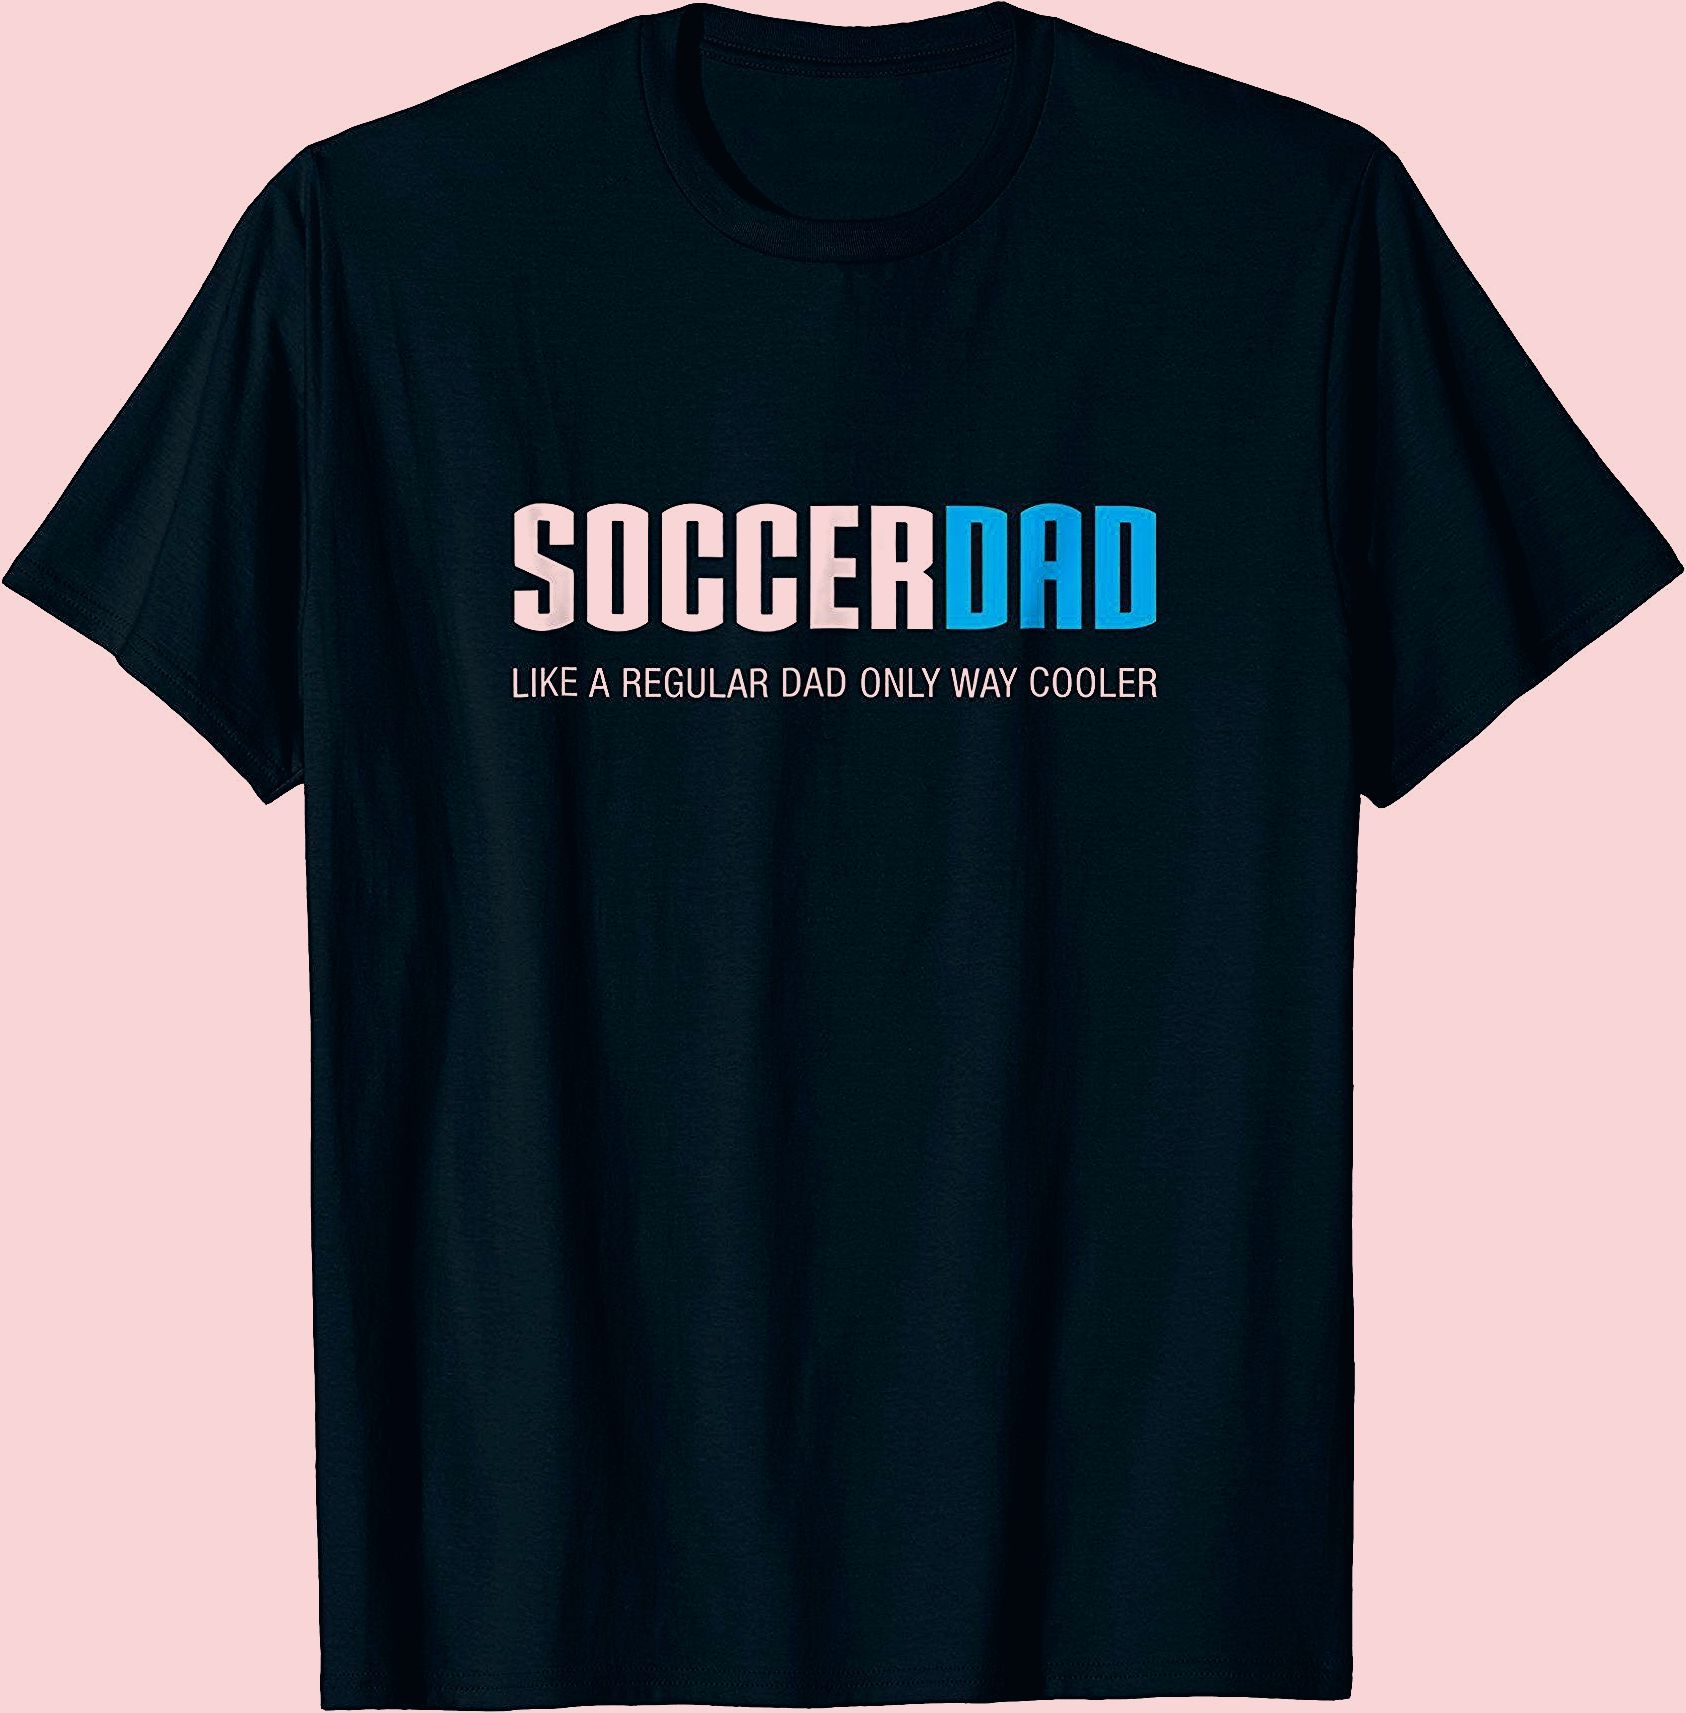 Photo of Mens Soccer Dad Shirt, Funny Cute Father's Day Gift – intecca.com